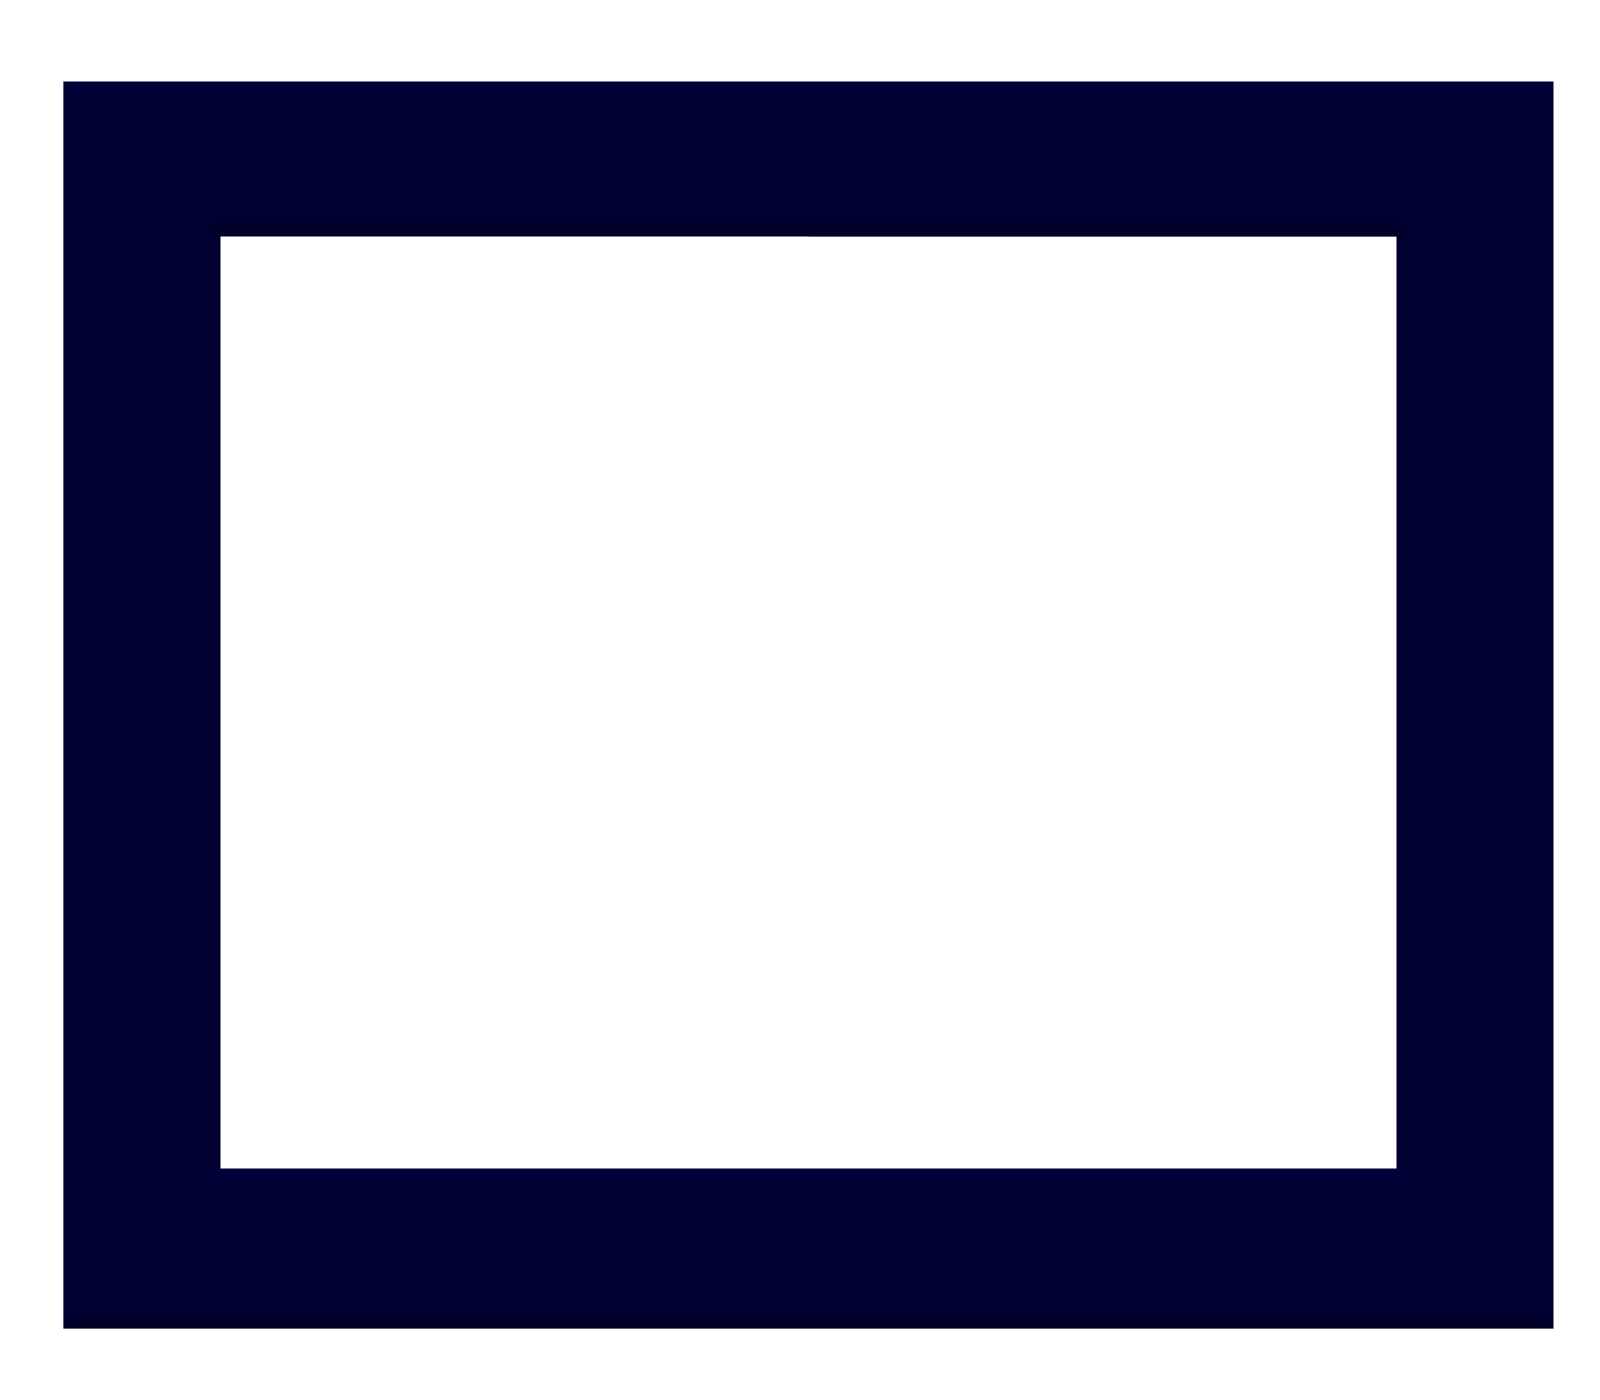 the gallery for gt rectangle frame png